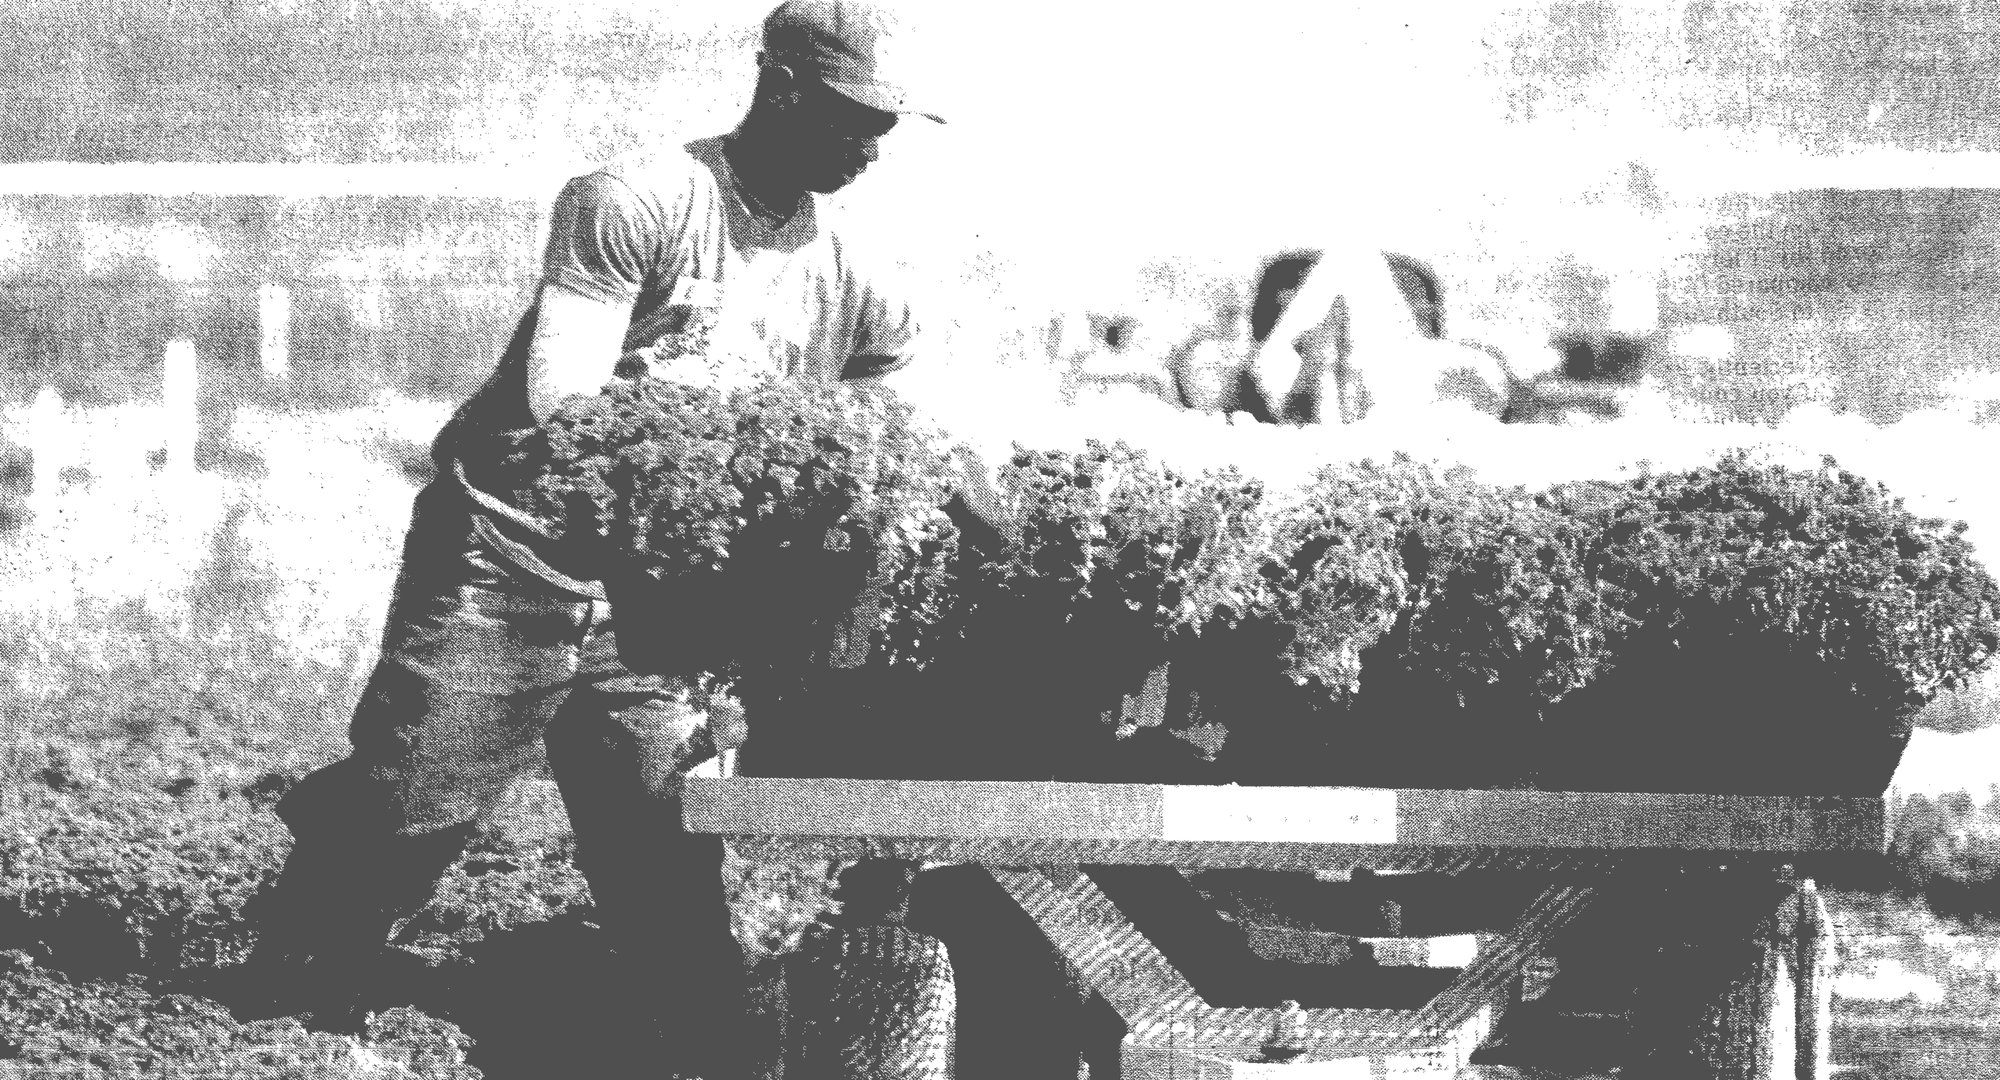 1993 - Peter Huggins of Briggs' Nursery Inc. in Summerton loads mums onto a trailer. The fall flowers were being shipped to the state farmer's market. Briggs' Nursery is the biggest wholesale greenhouse operation in South Carolina.